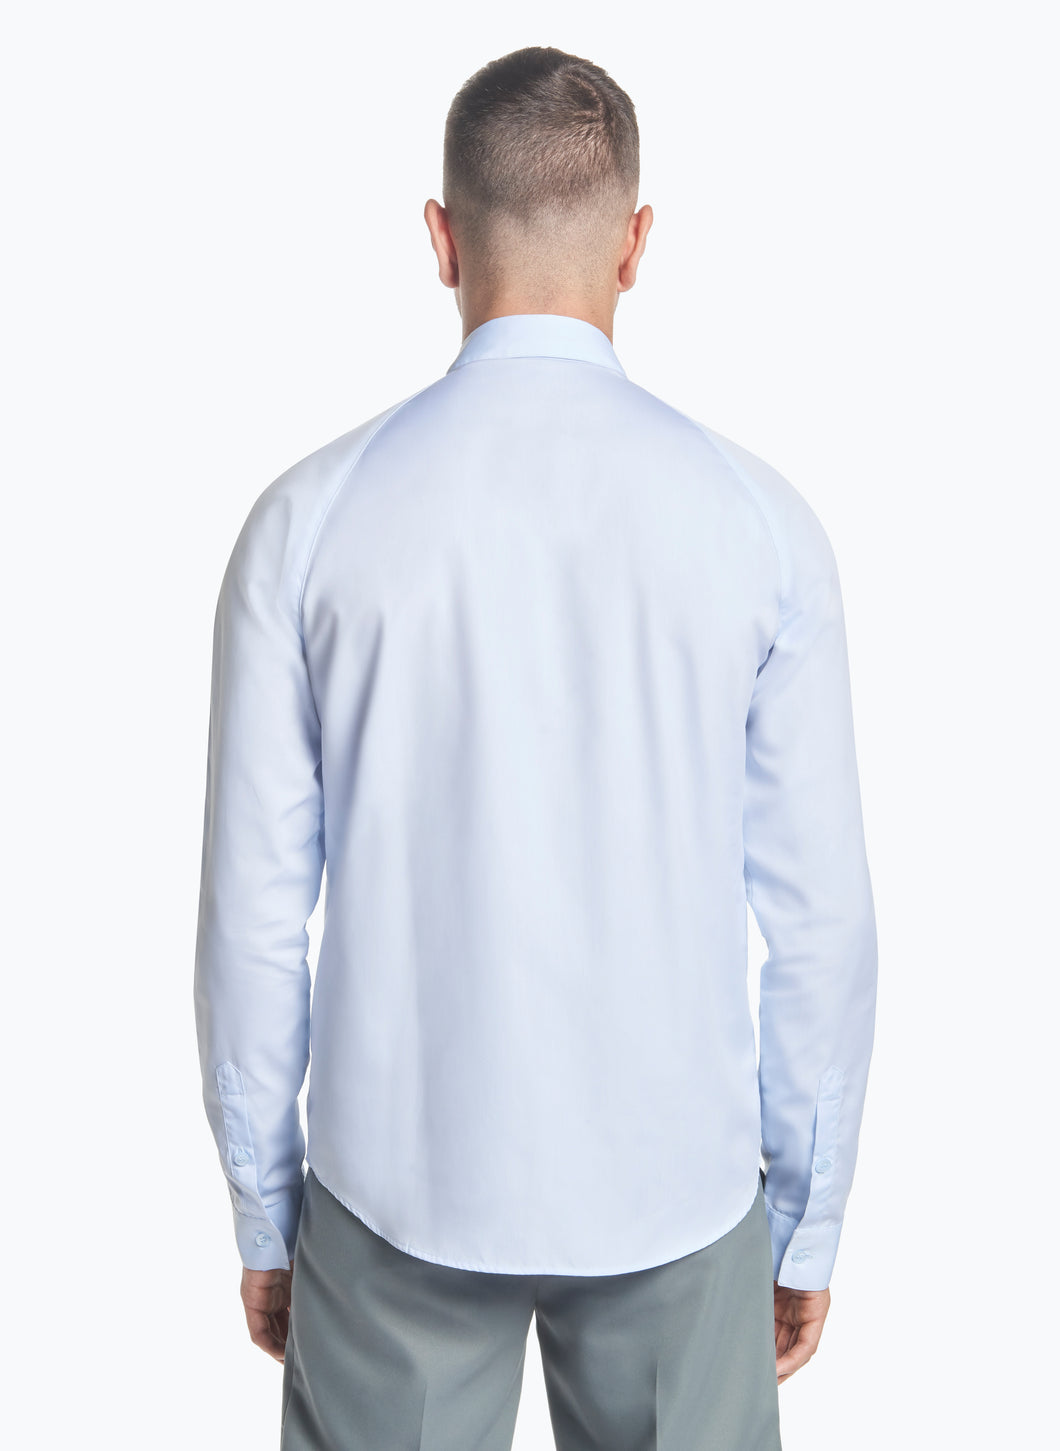 Raglan Sleeve Shirt in Sky Blue Poplin